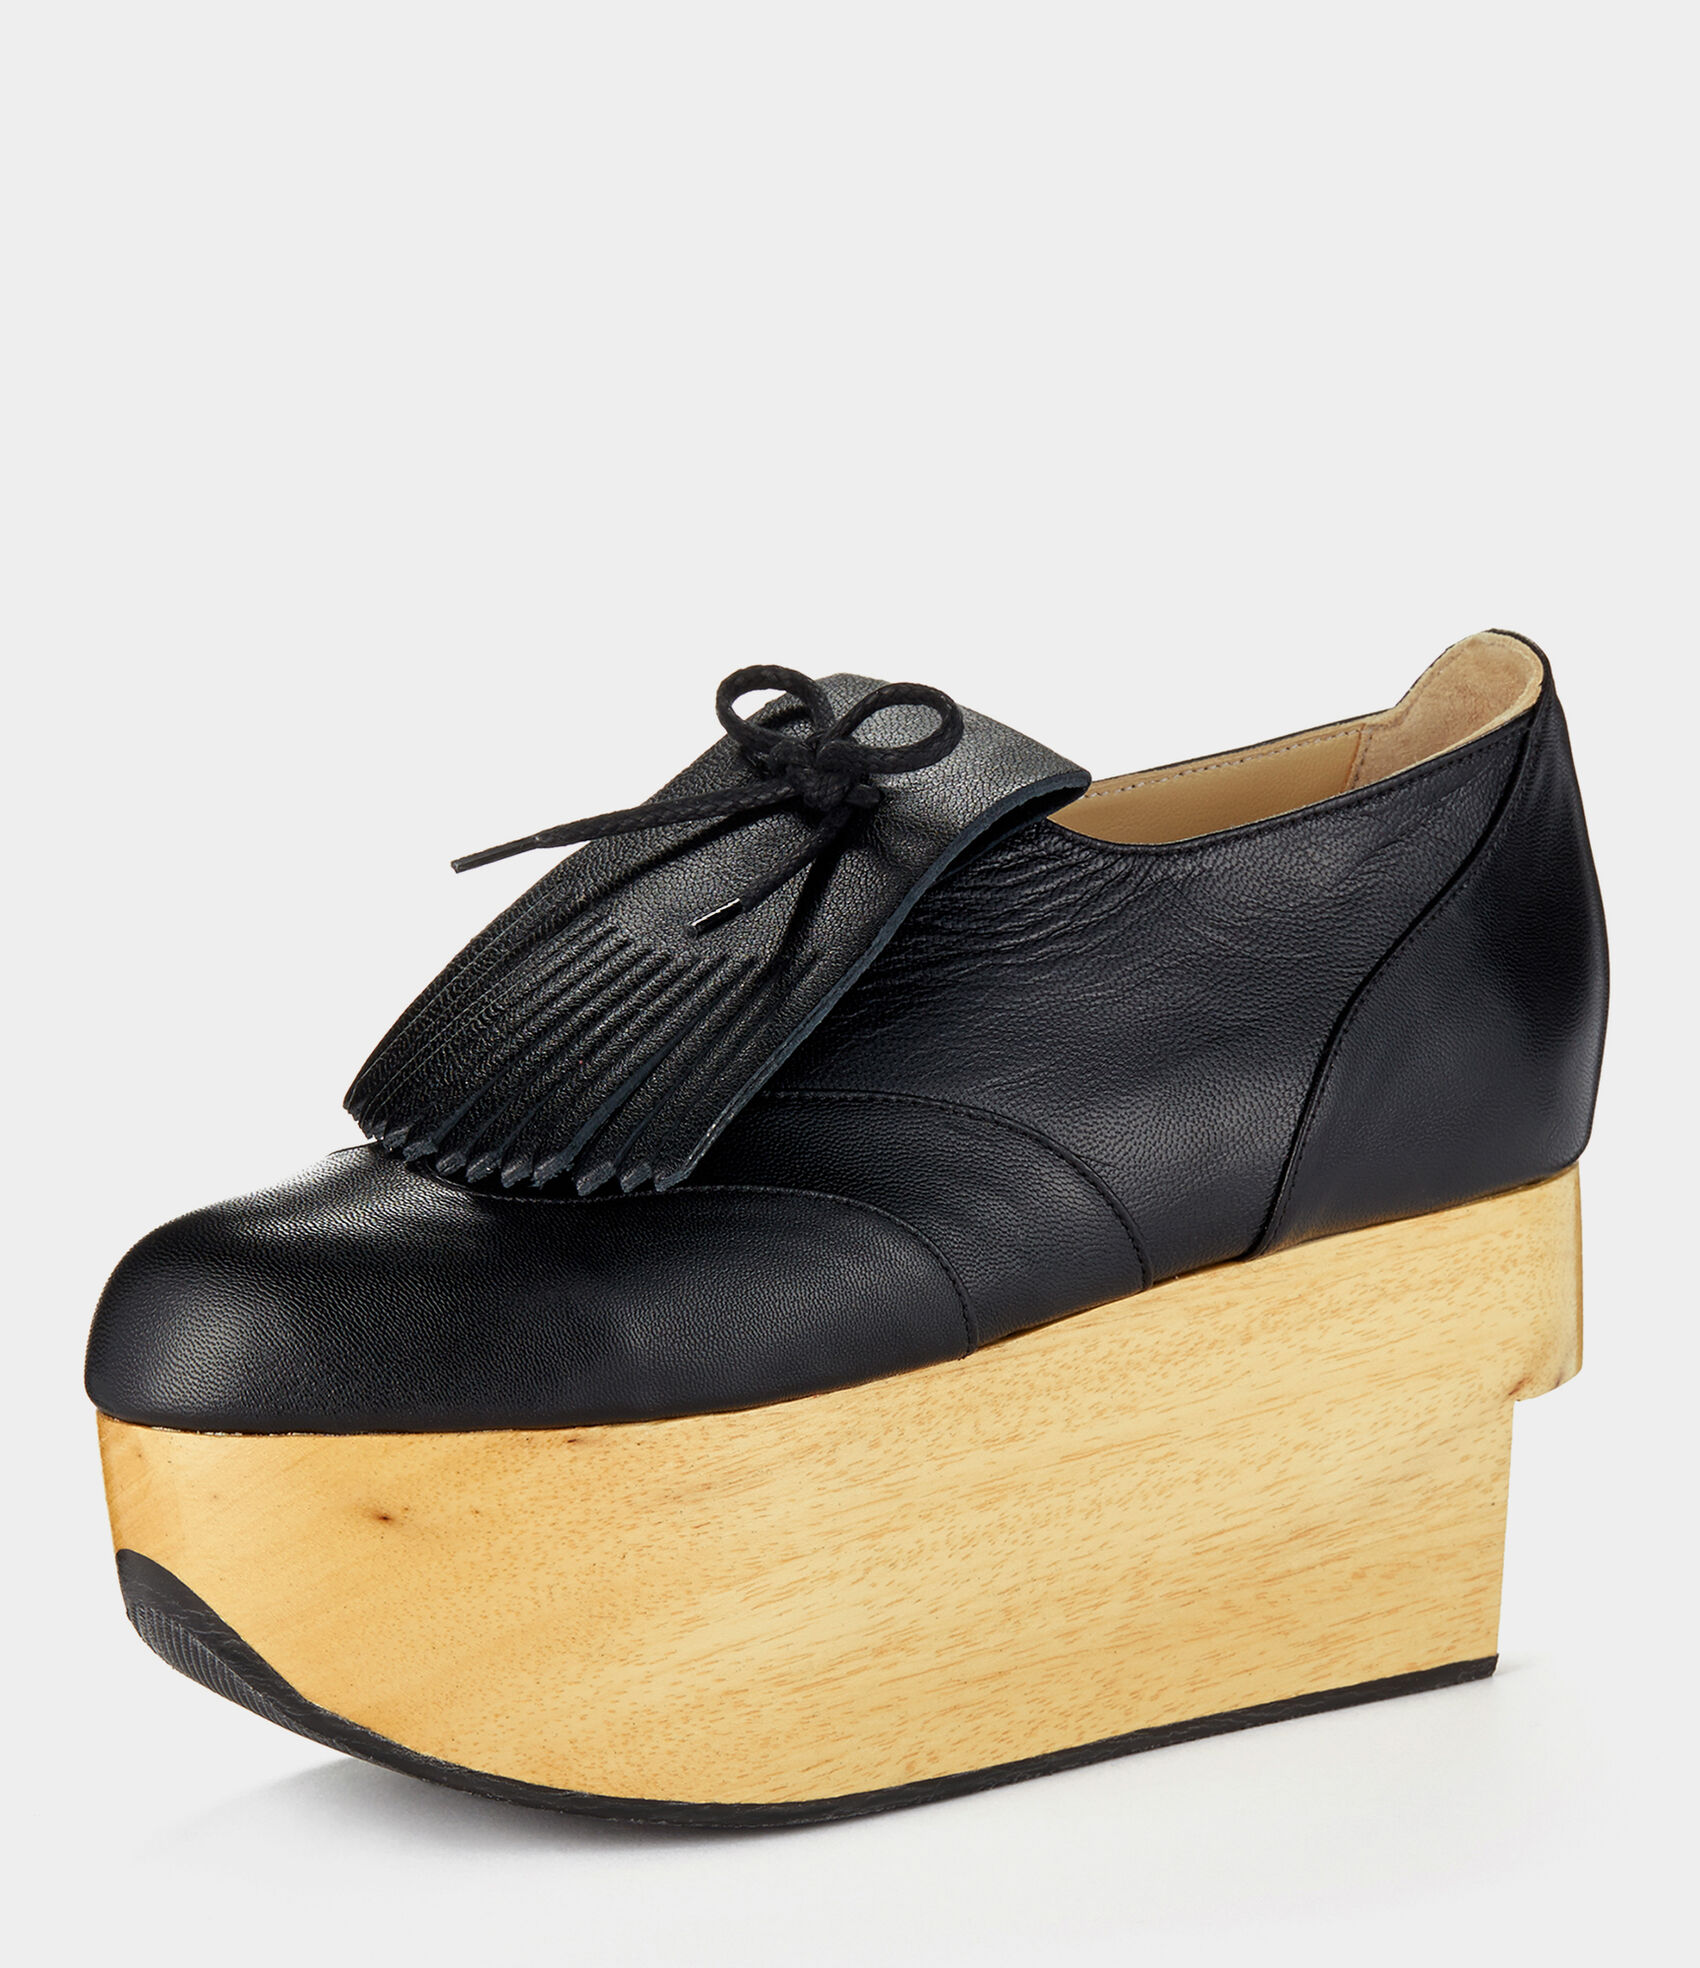 da811203d8d05 Vivienne Westwood Platforms | Women's Shoes | Vivienne Westwood - Rocking  Horse Golf Black